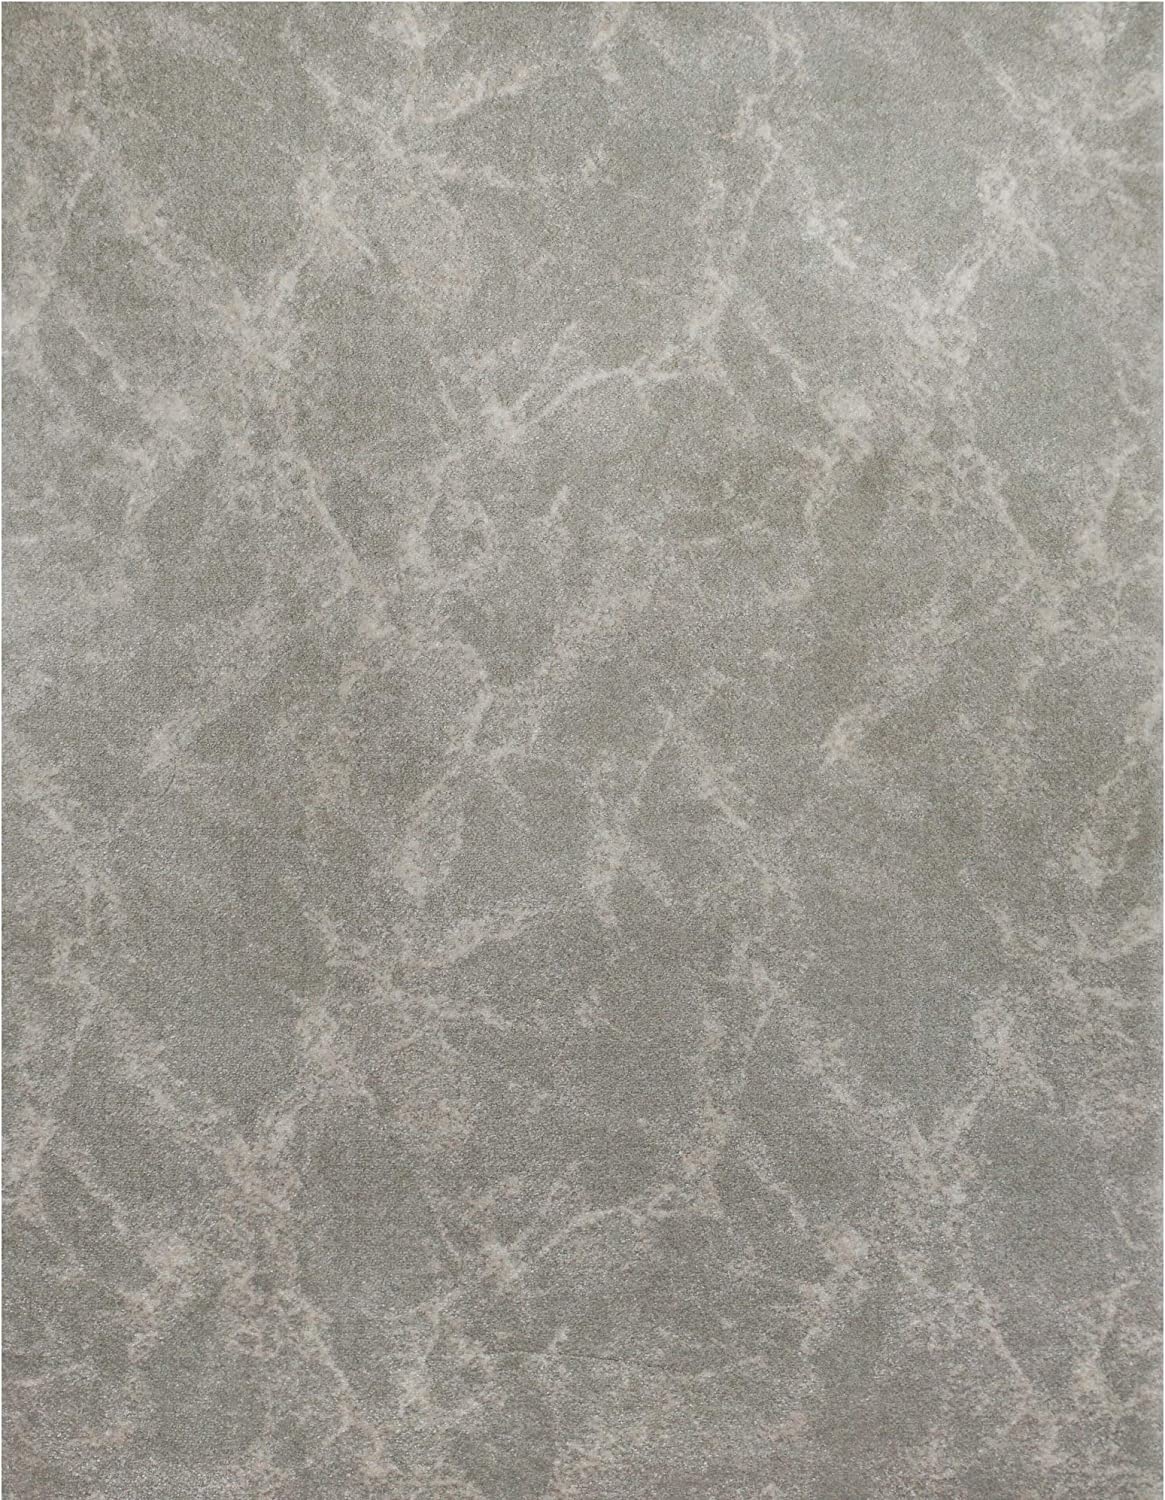 Kane Carpet 12' Challenge the lowest price of Japan ☆ Quartz Abstract Design Gray Ranking TOP4 Ivory Broadloom and